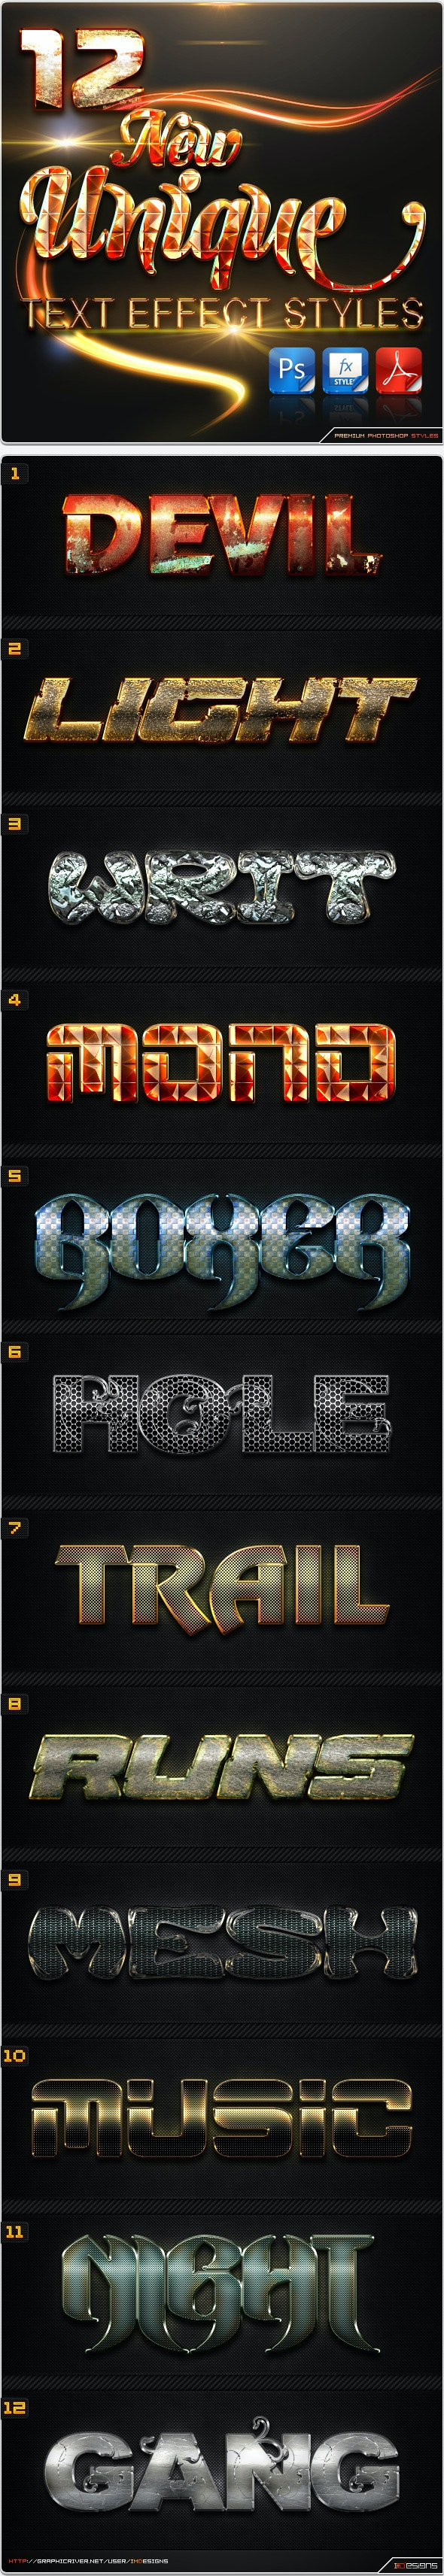 12 New Unique Text Effect Styles - Text Effects Styles